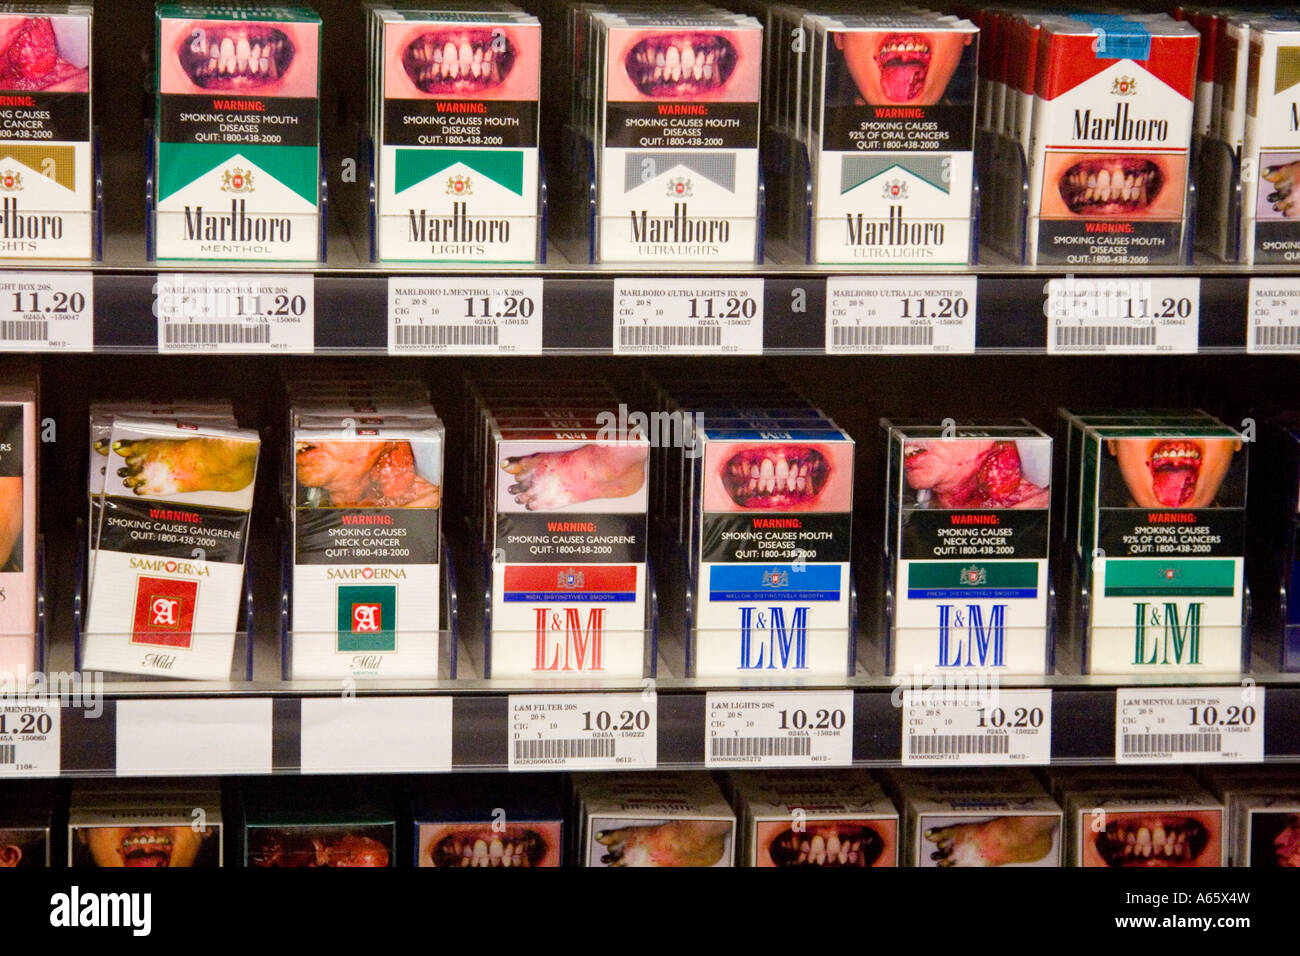 b1ff2227a0 Cigarette Packs with Graphic Photograph Warning Labels Legally Required,  Singapore